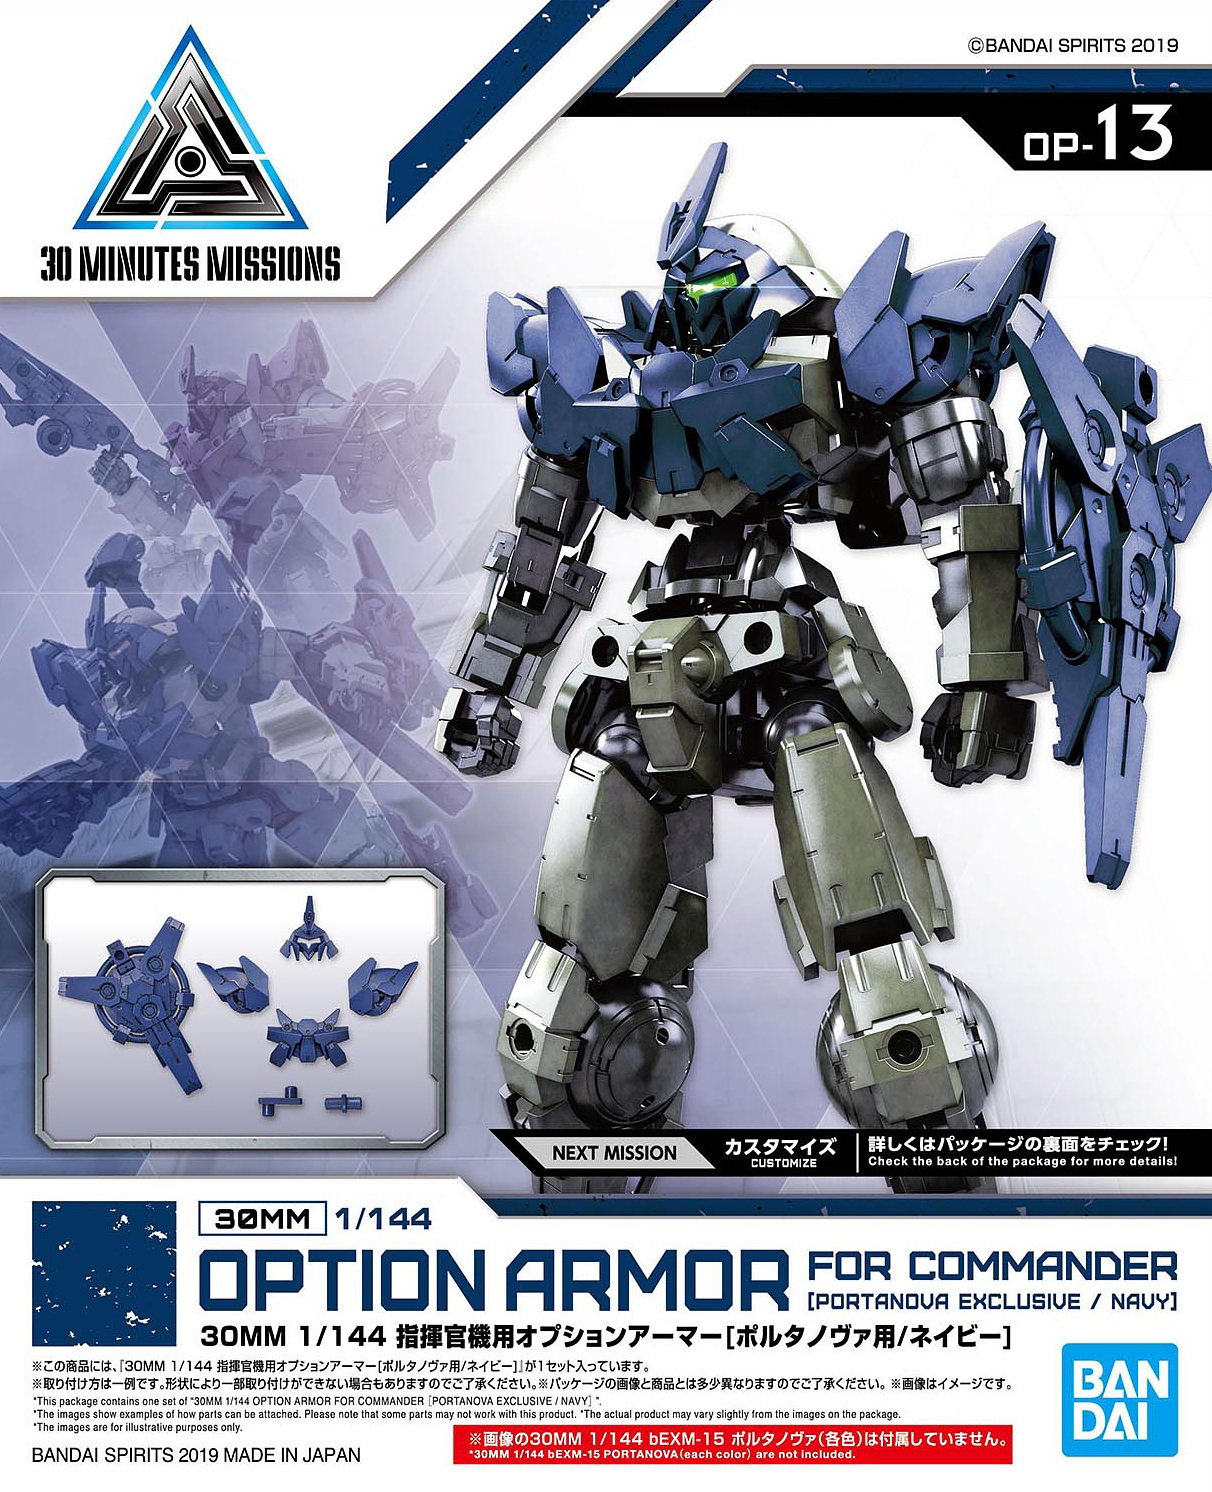 Bandai Spirits 30 Minute Missions #13 1/144 Option Armor For Commander Type (Portanova Exclusive Navy)